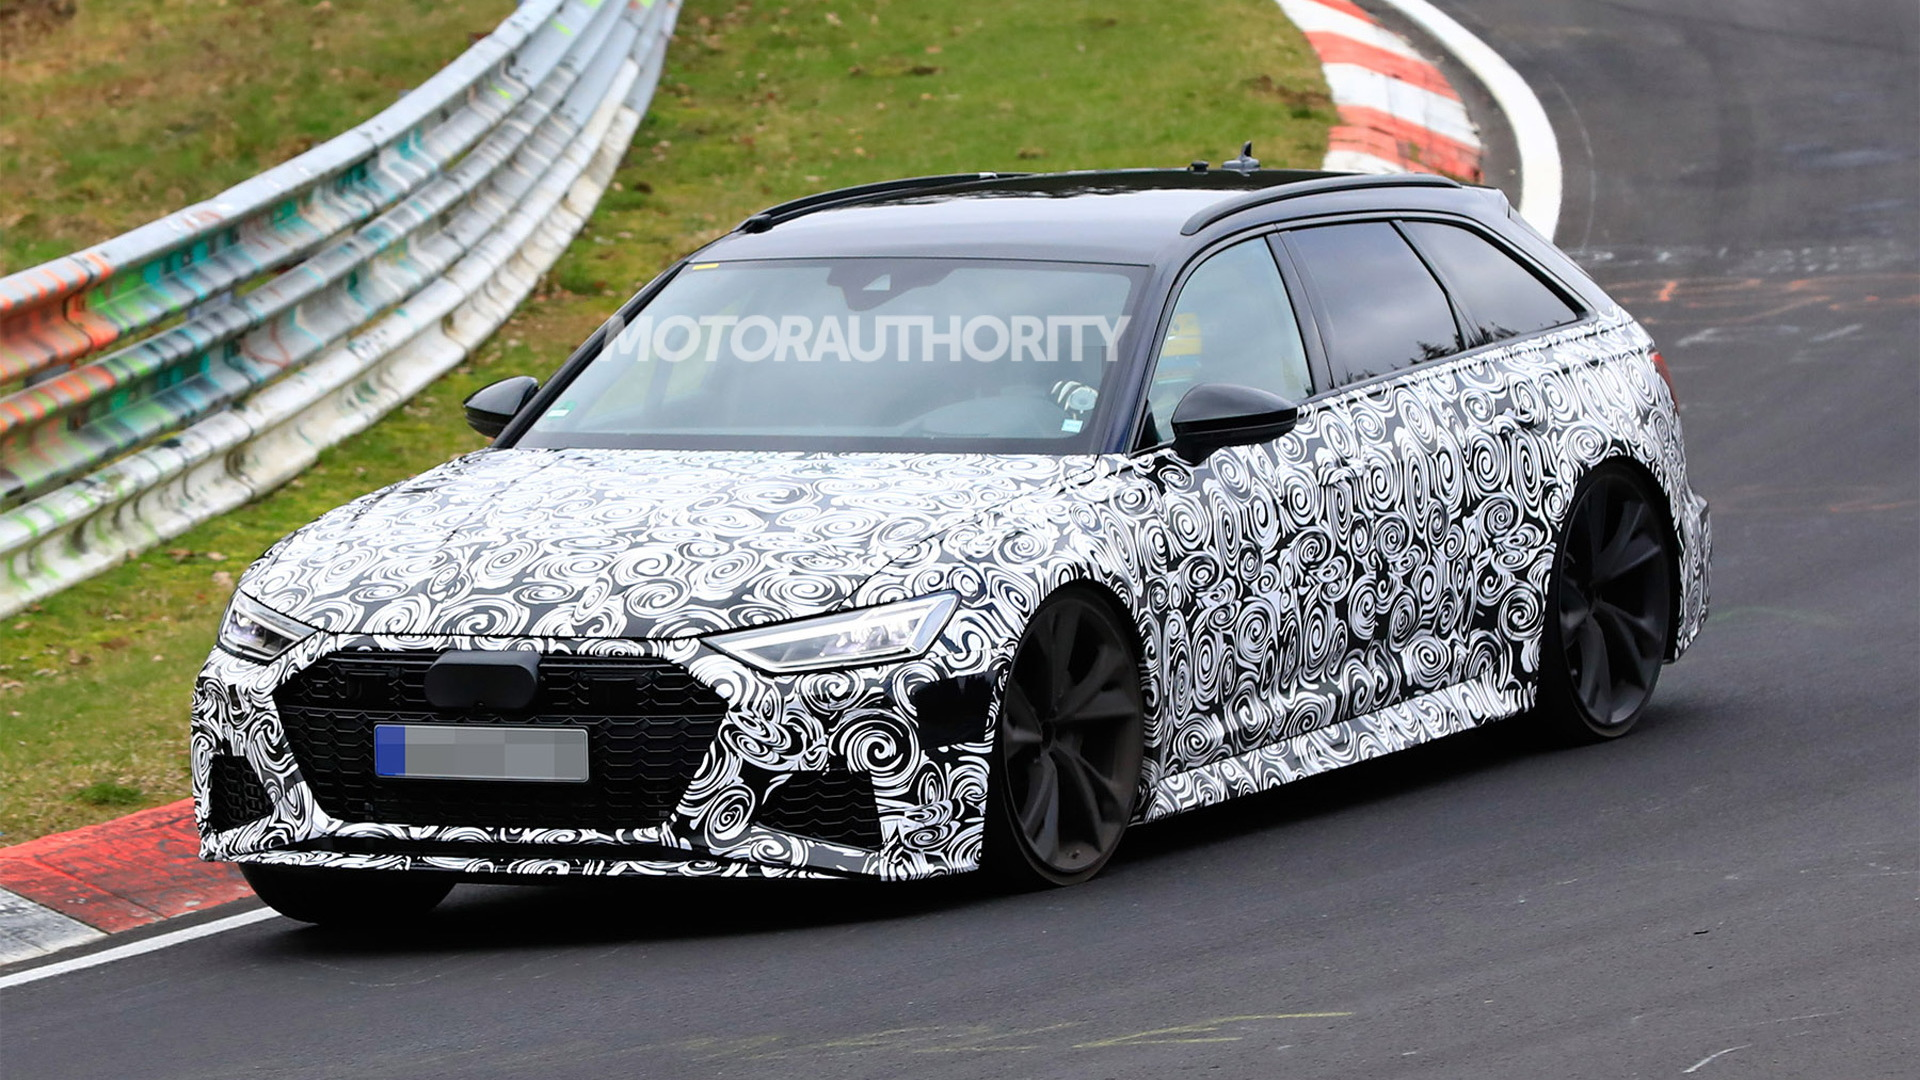 2020 Audi Rs 6 Avant Spy Shots And Video